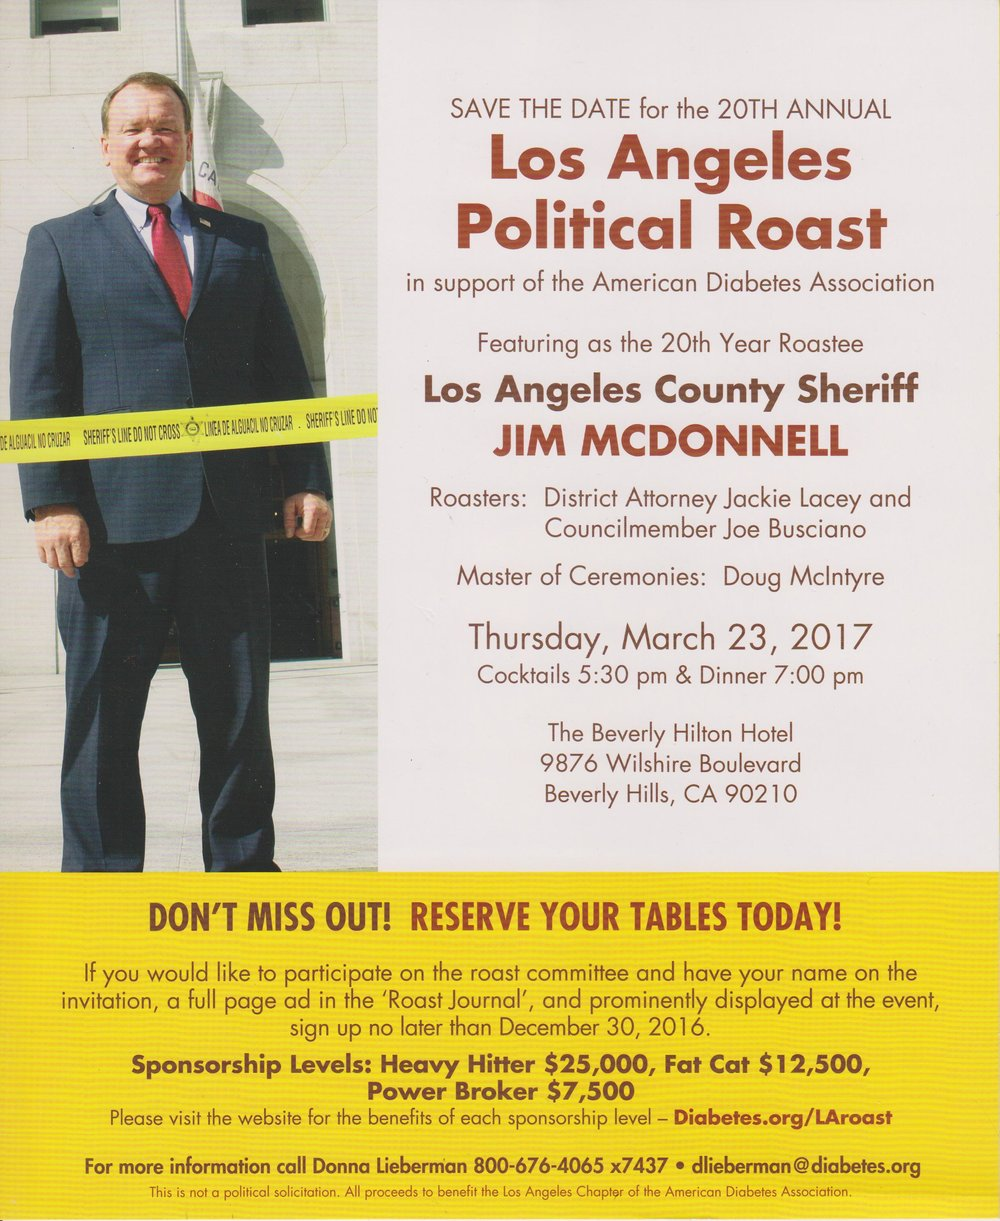 LA Political Roast Invite